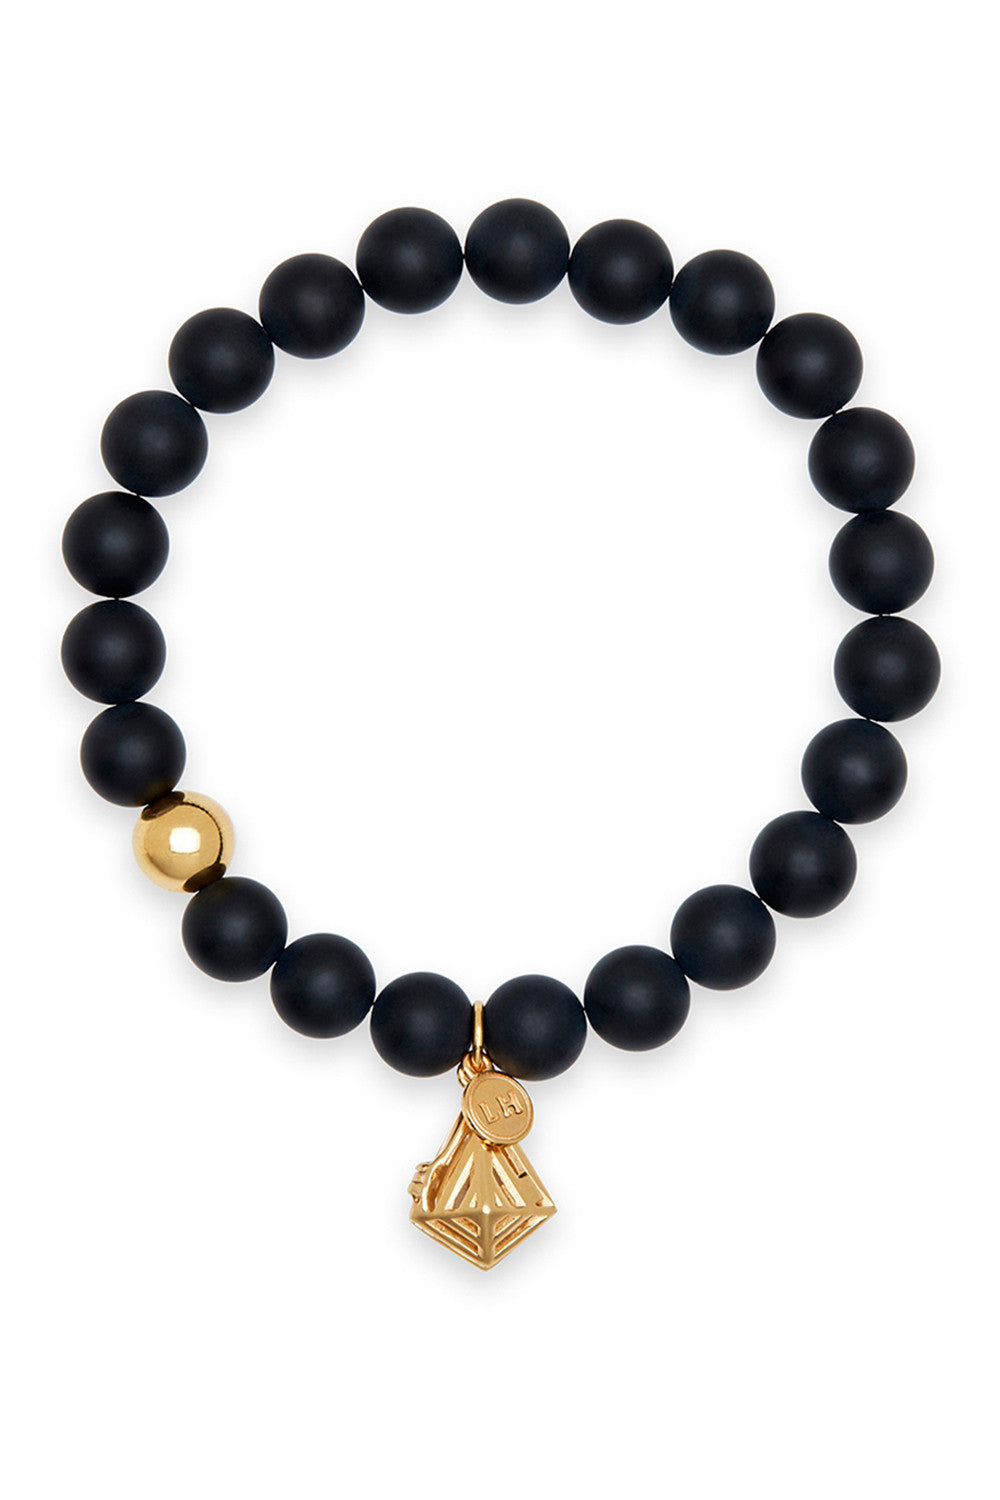 Orion Bracelet with Geo-Gem Charm